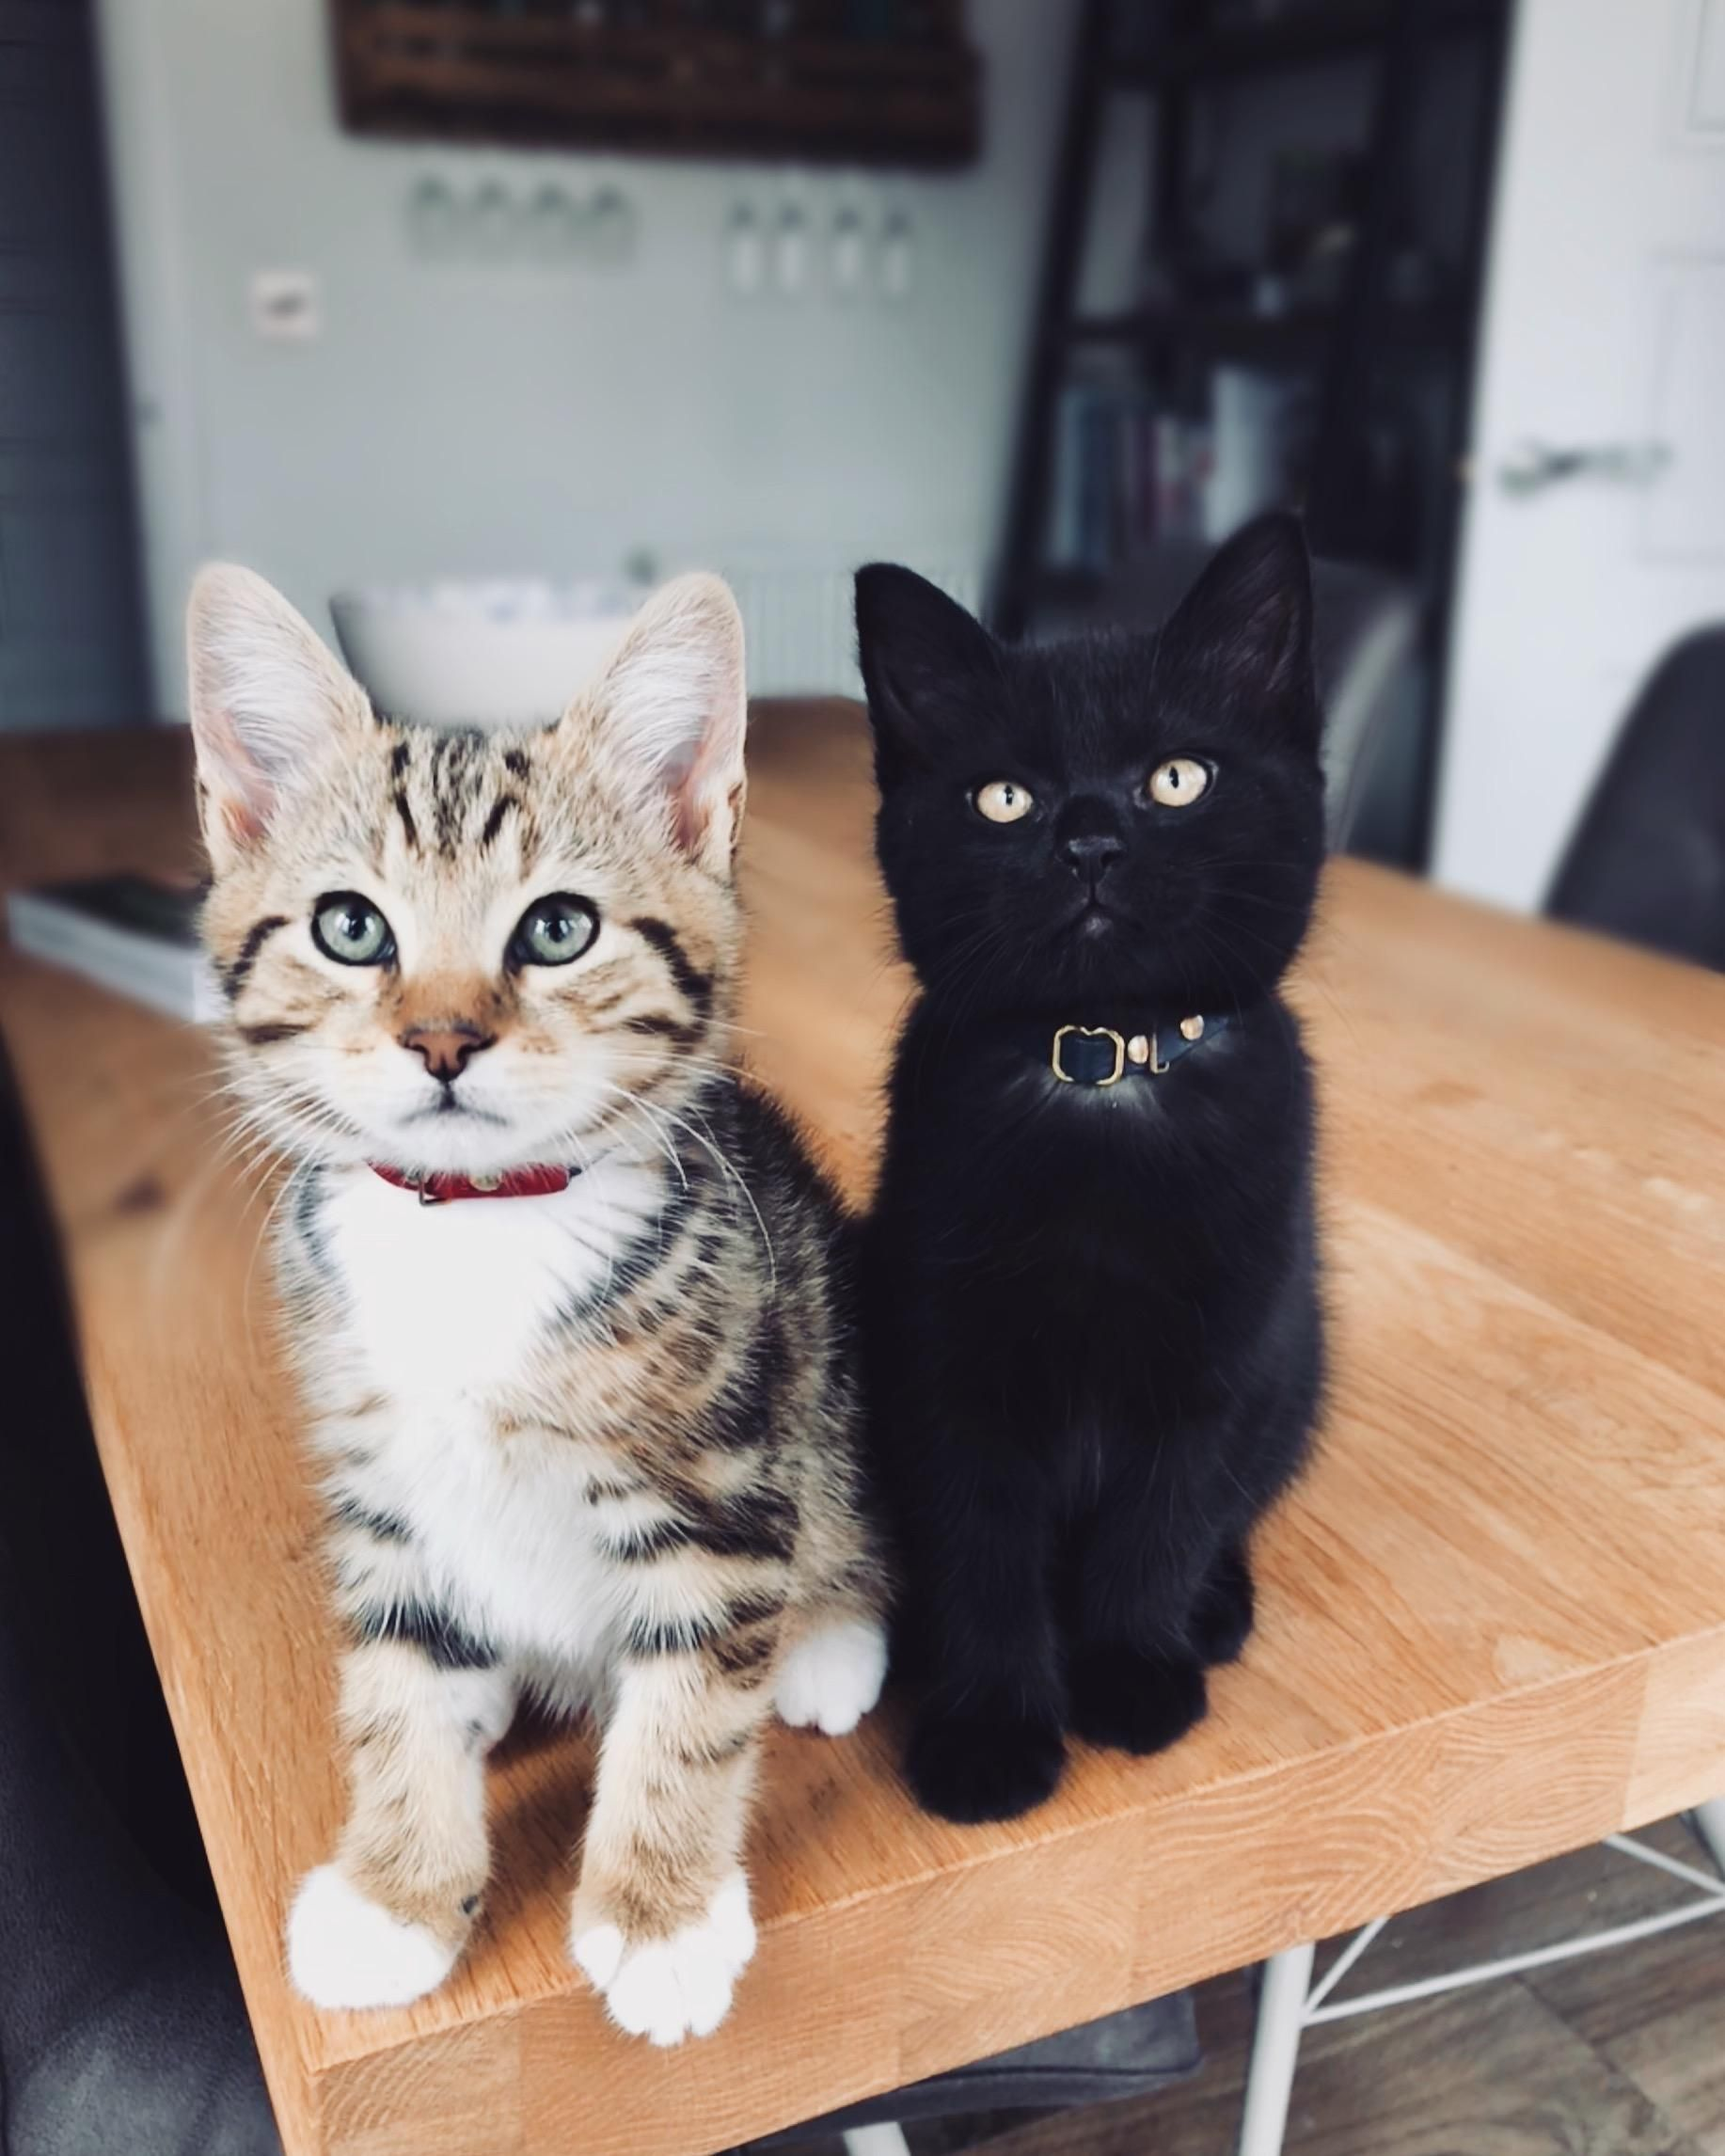 Ozzy and Kane - Modern Cat's Photo Contest